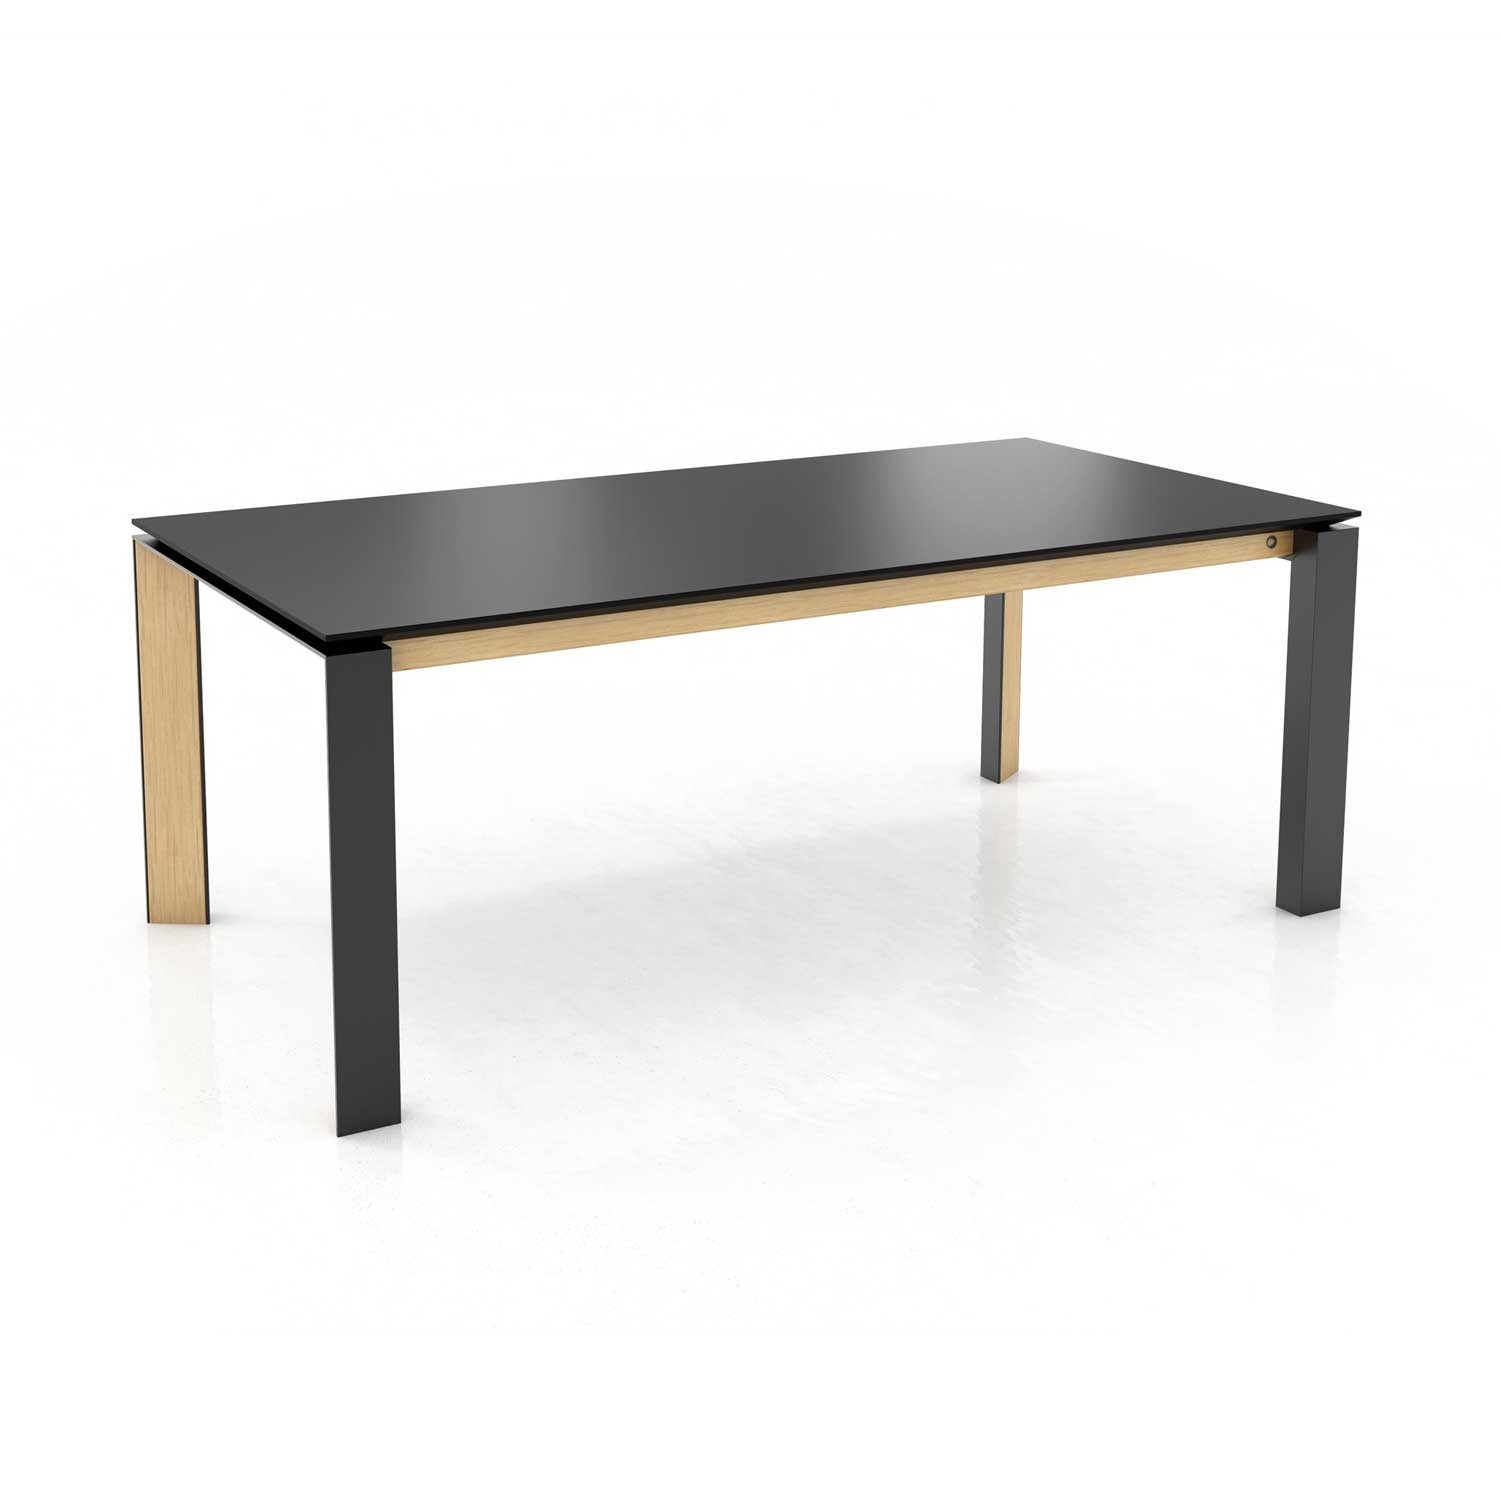 Mason metal leg PB3 Fenix + walnut extending dining table